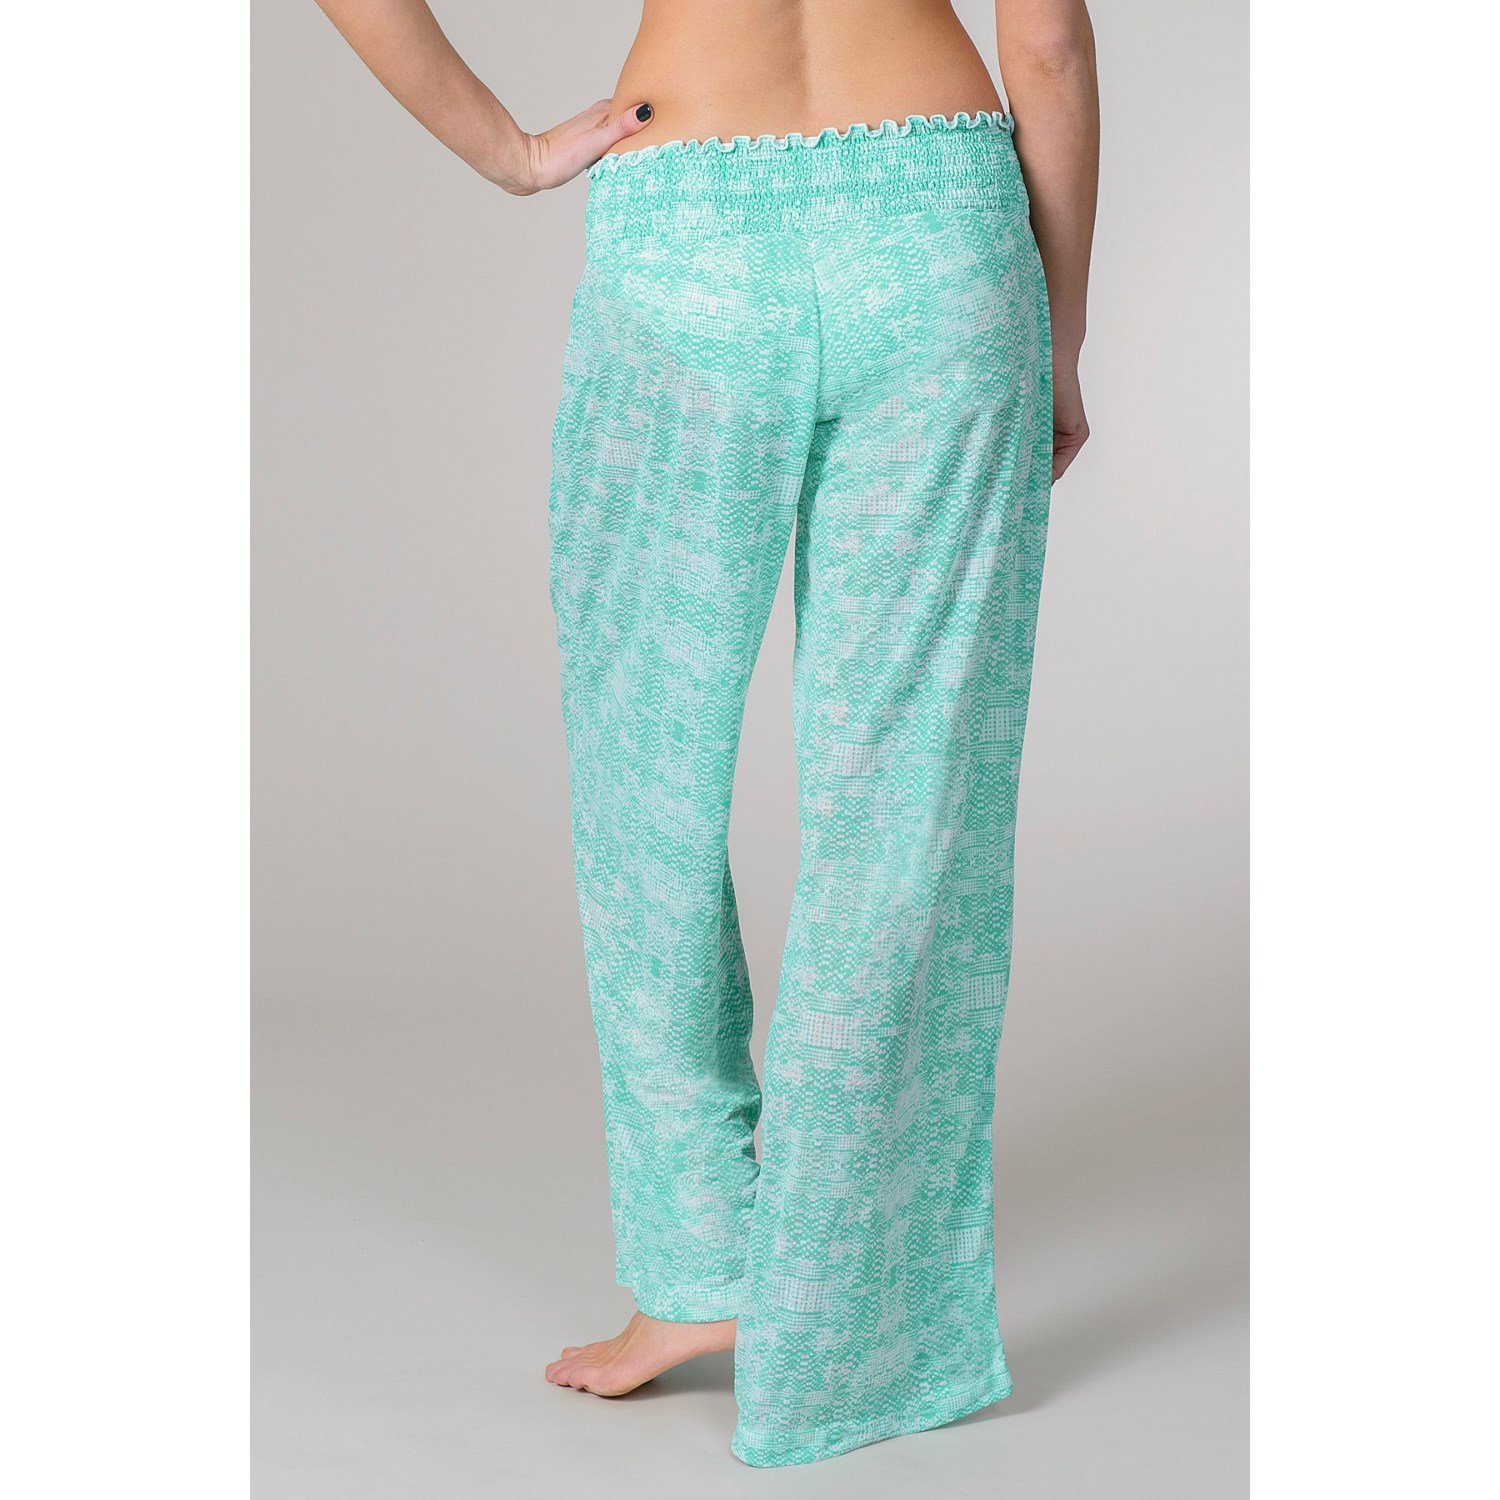 swimsuit cover up pants for women